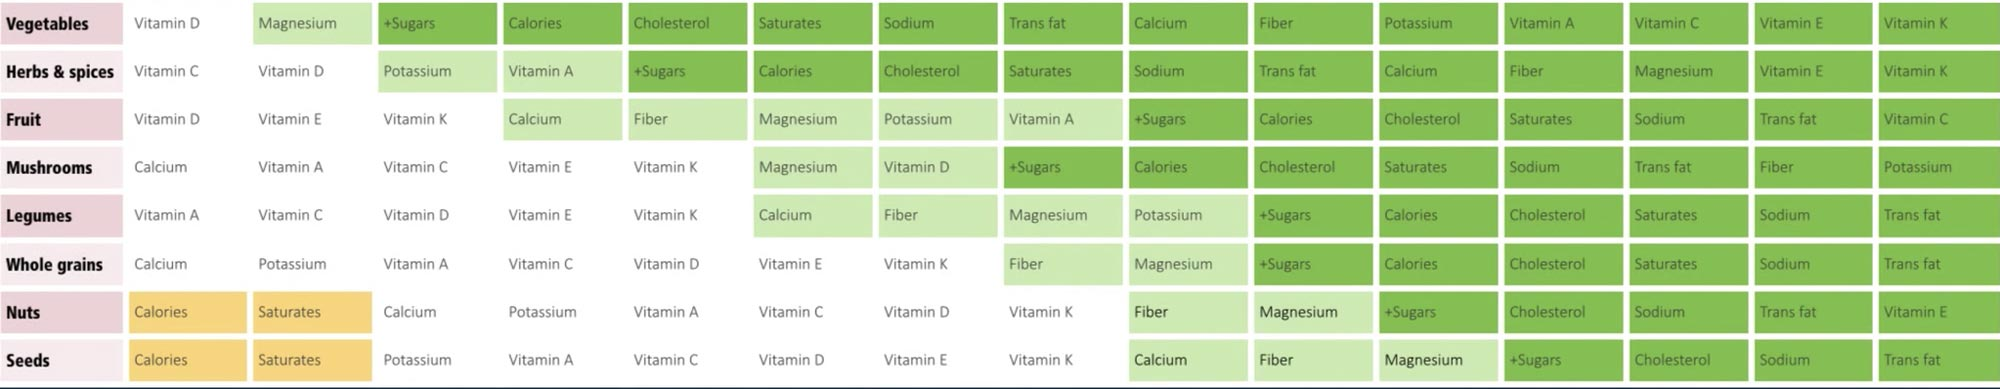 chart of foods and their vitamins/minerals